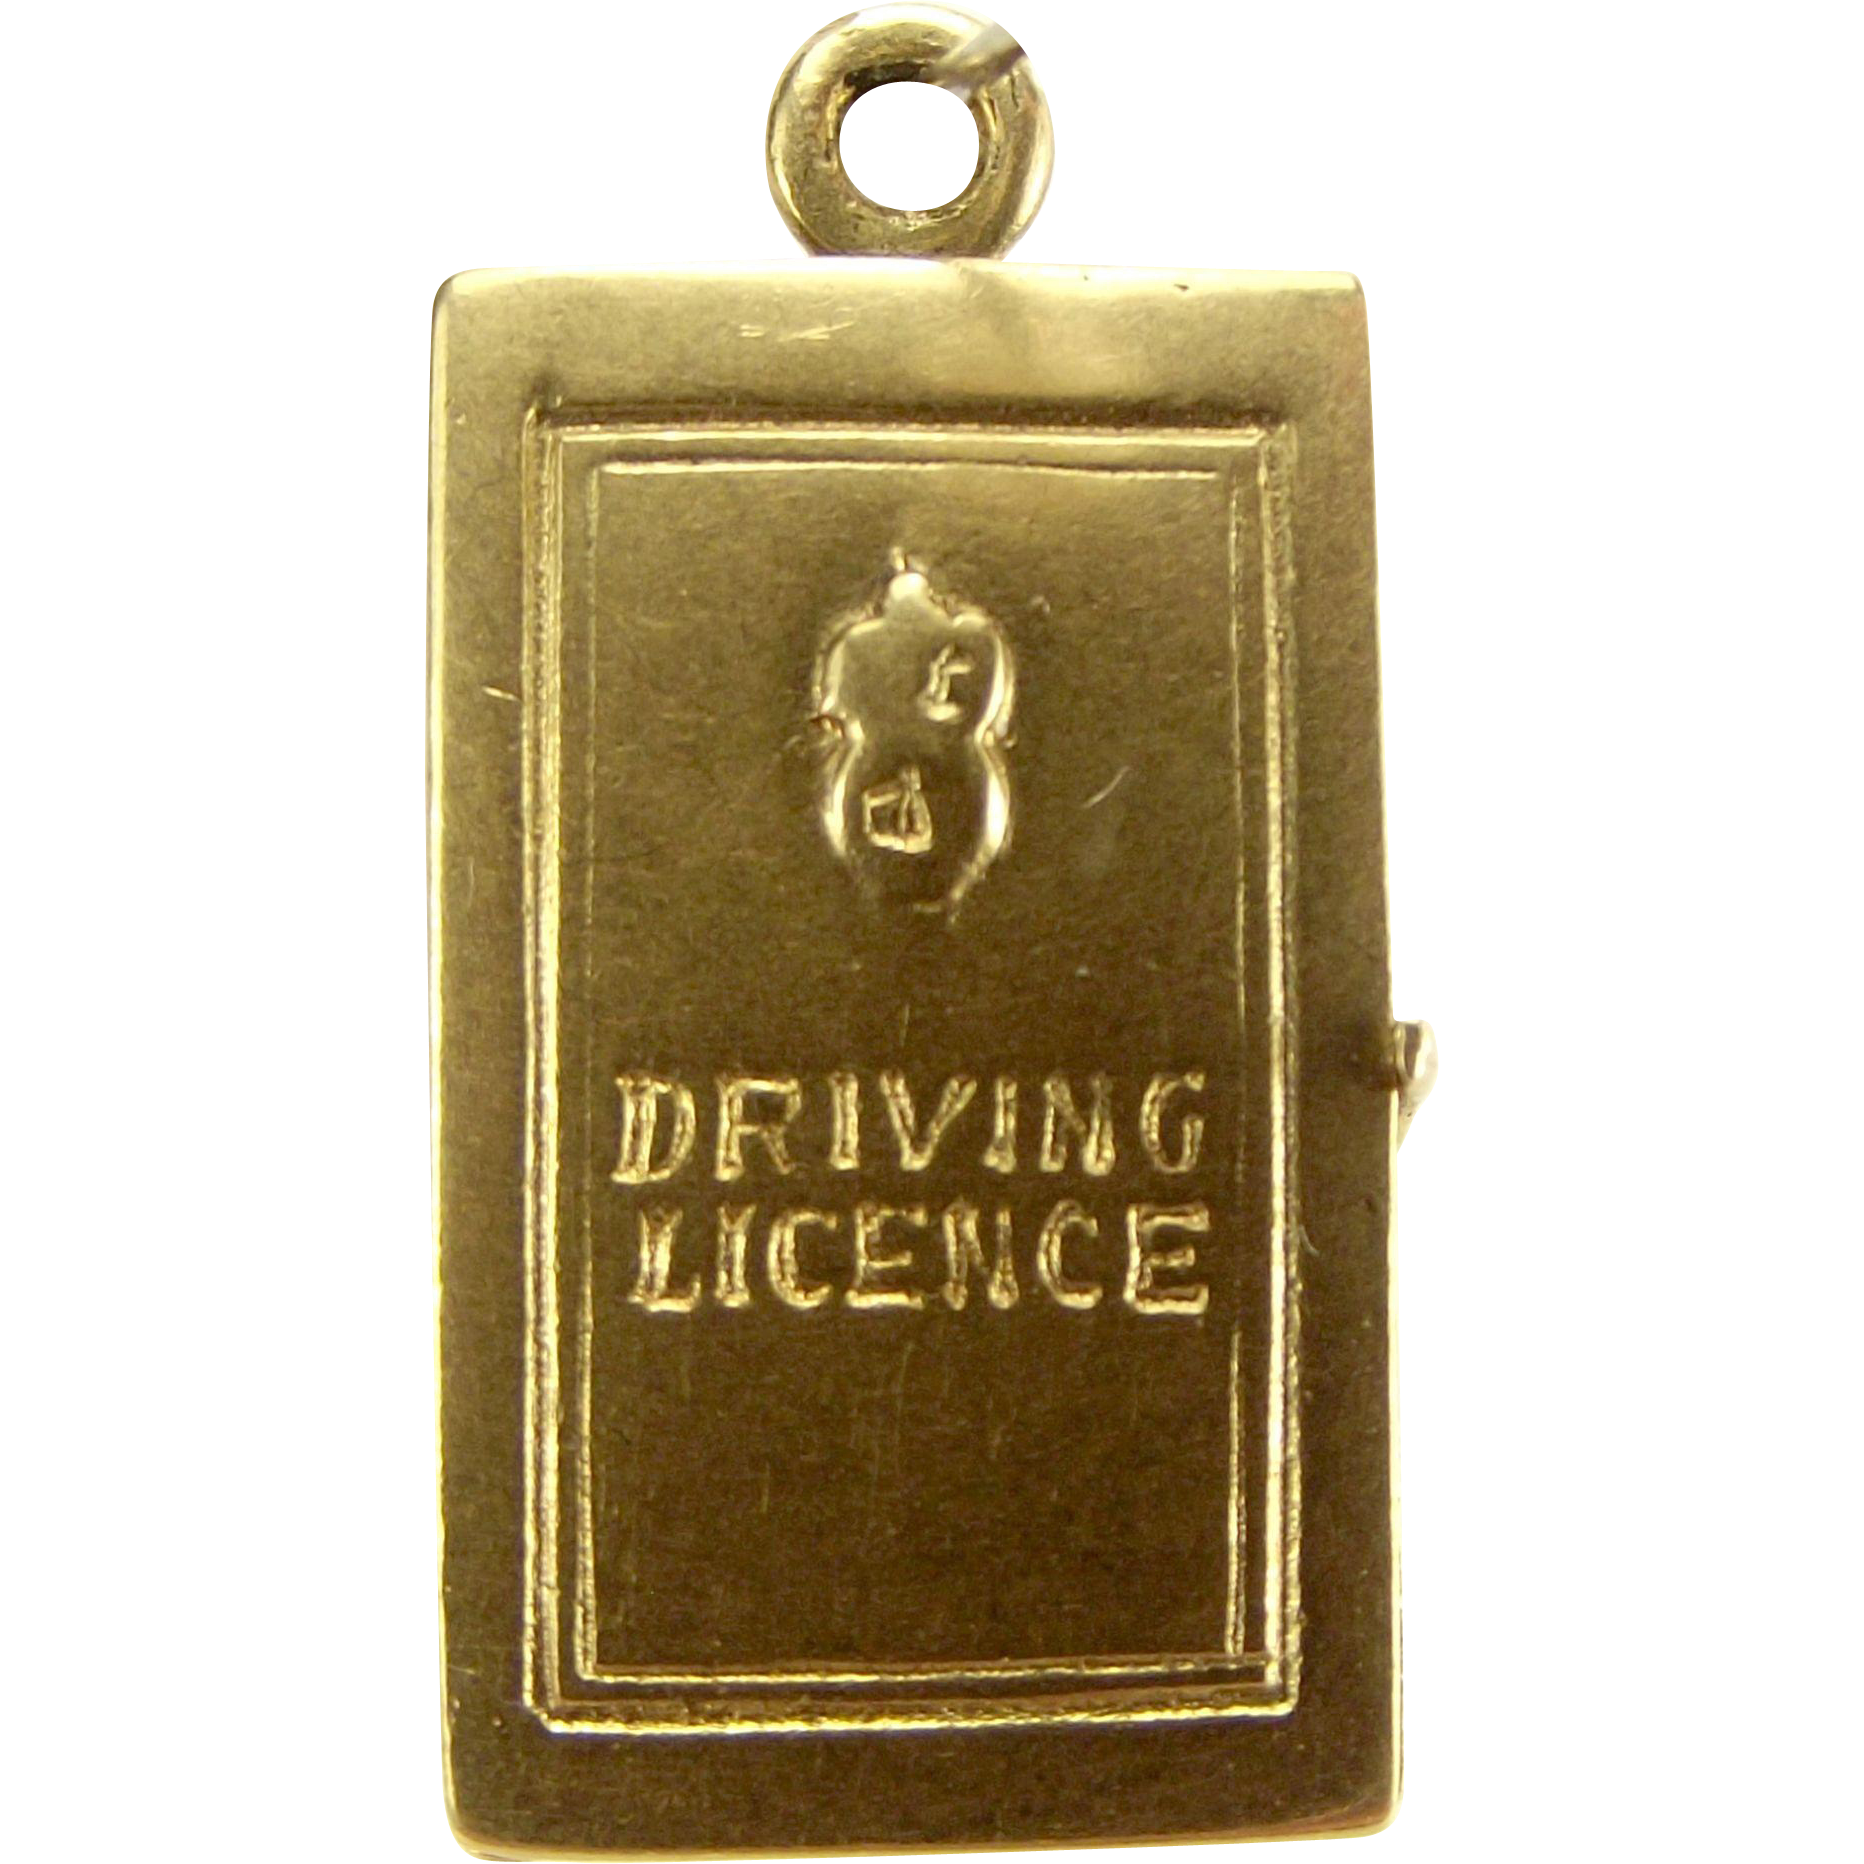 Vintage 9ct Gold DRIVING LICENCE Charm Opens Original Paper Inserts